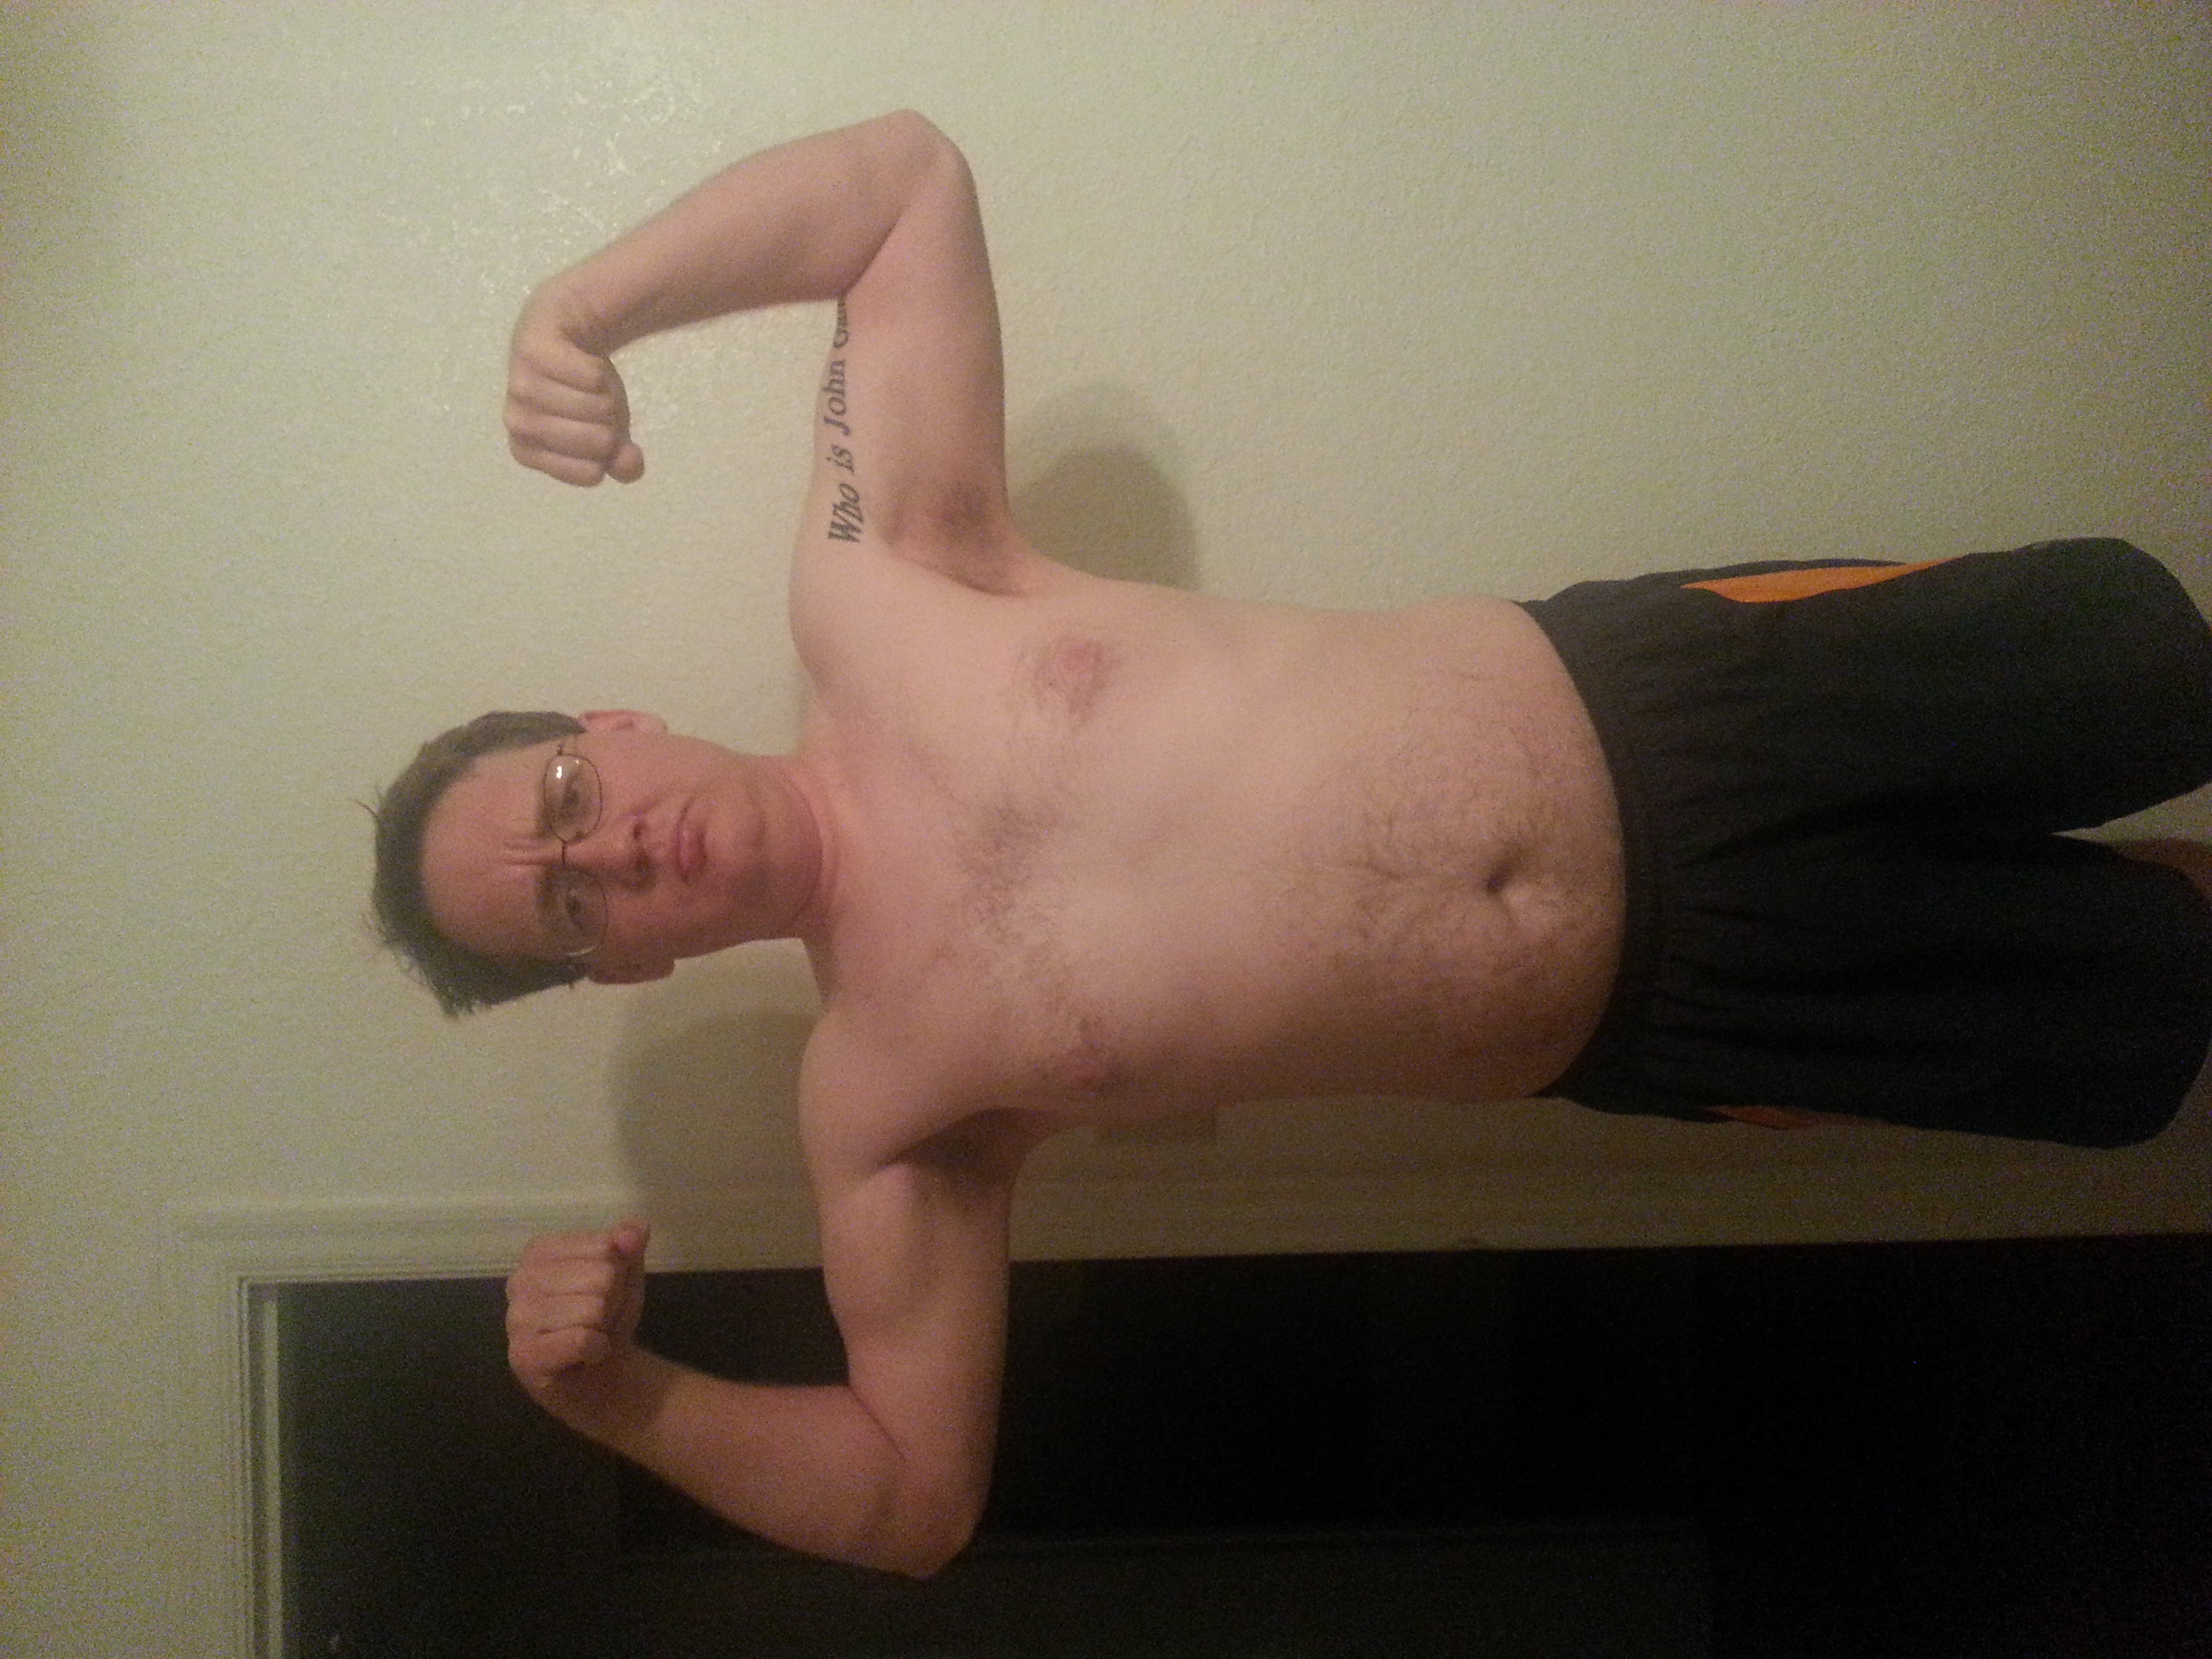 pohibaba  more monday shed competition fitness time hopefully vote